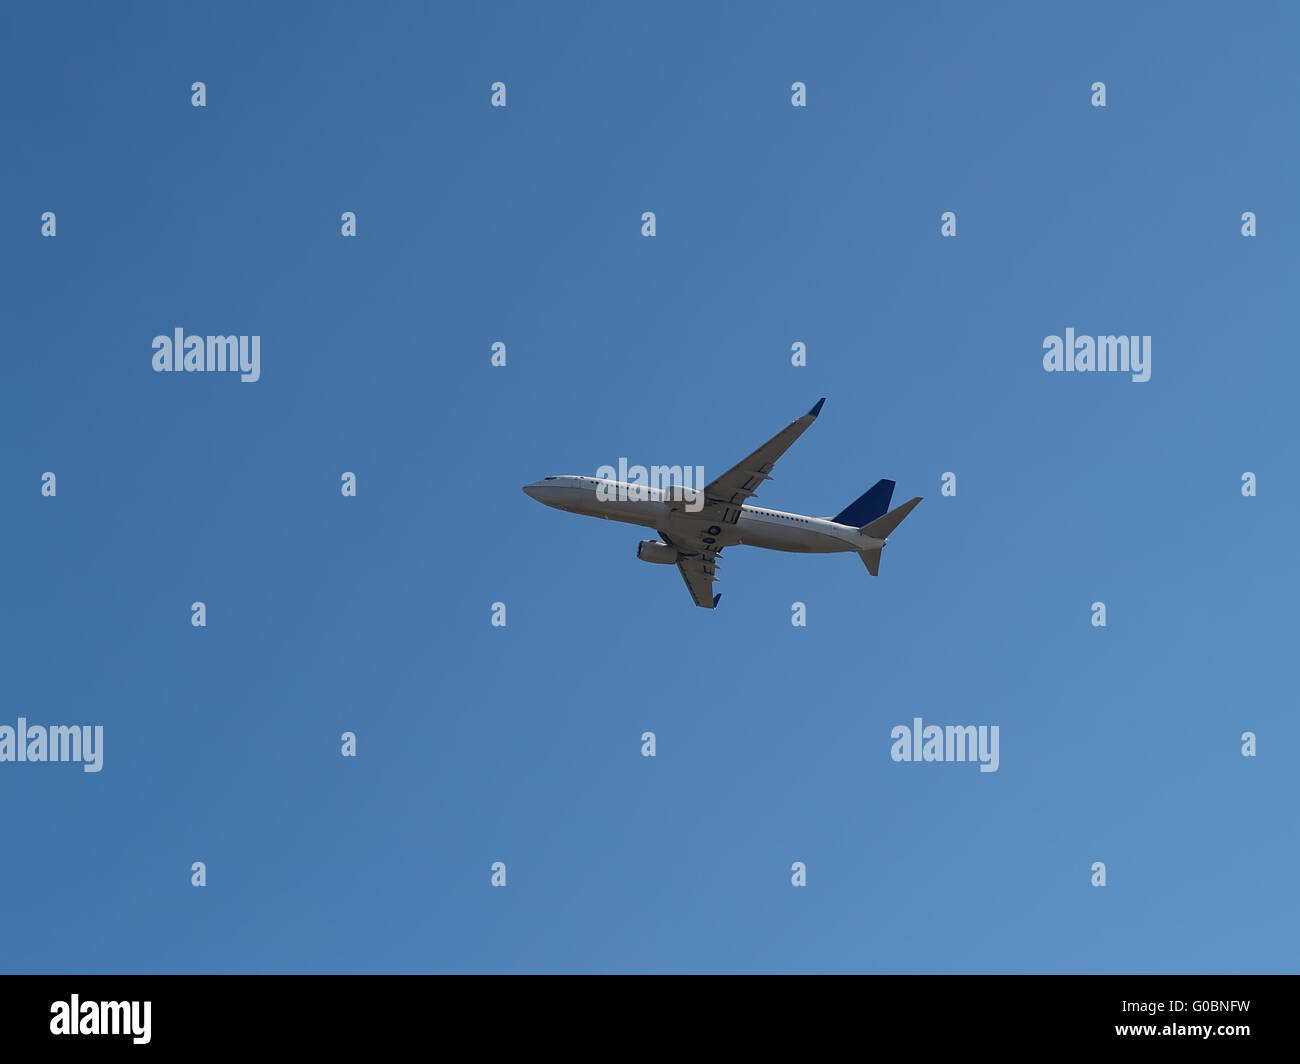 Two Engine Jet Liner Climbing Into Blue Sky - Stock Image